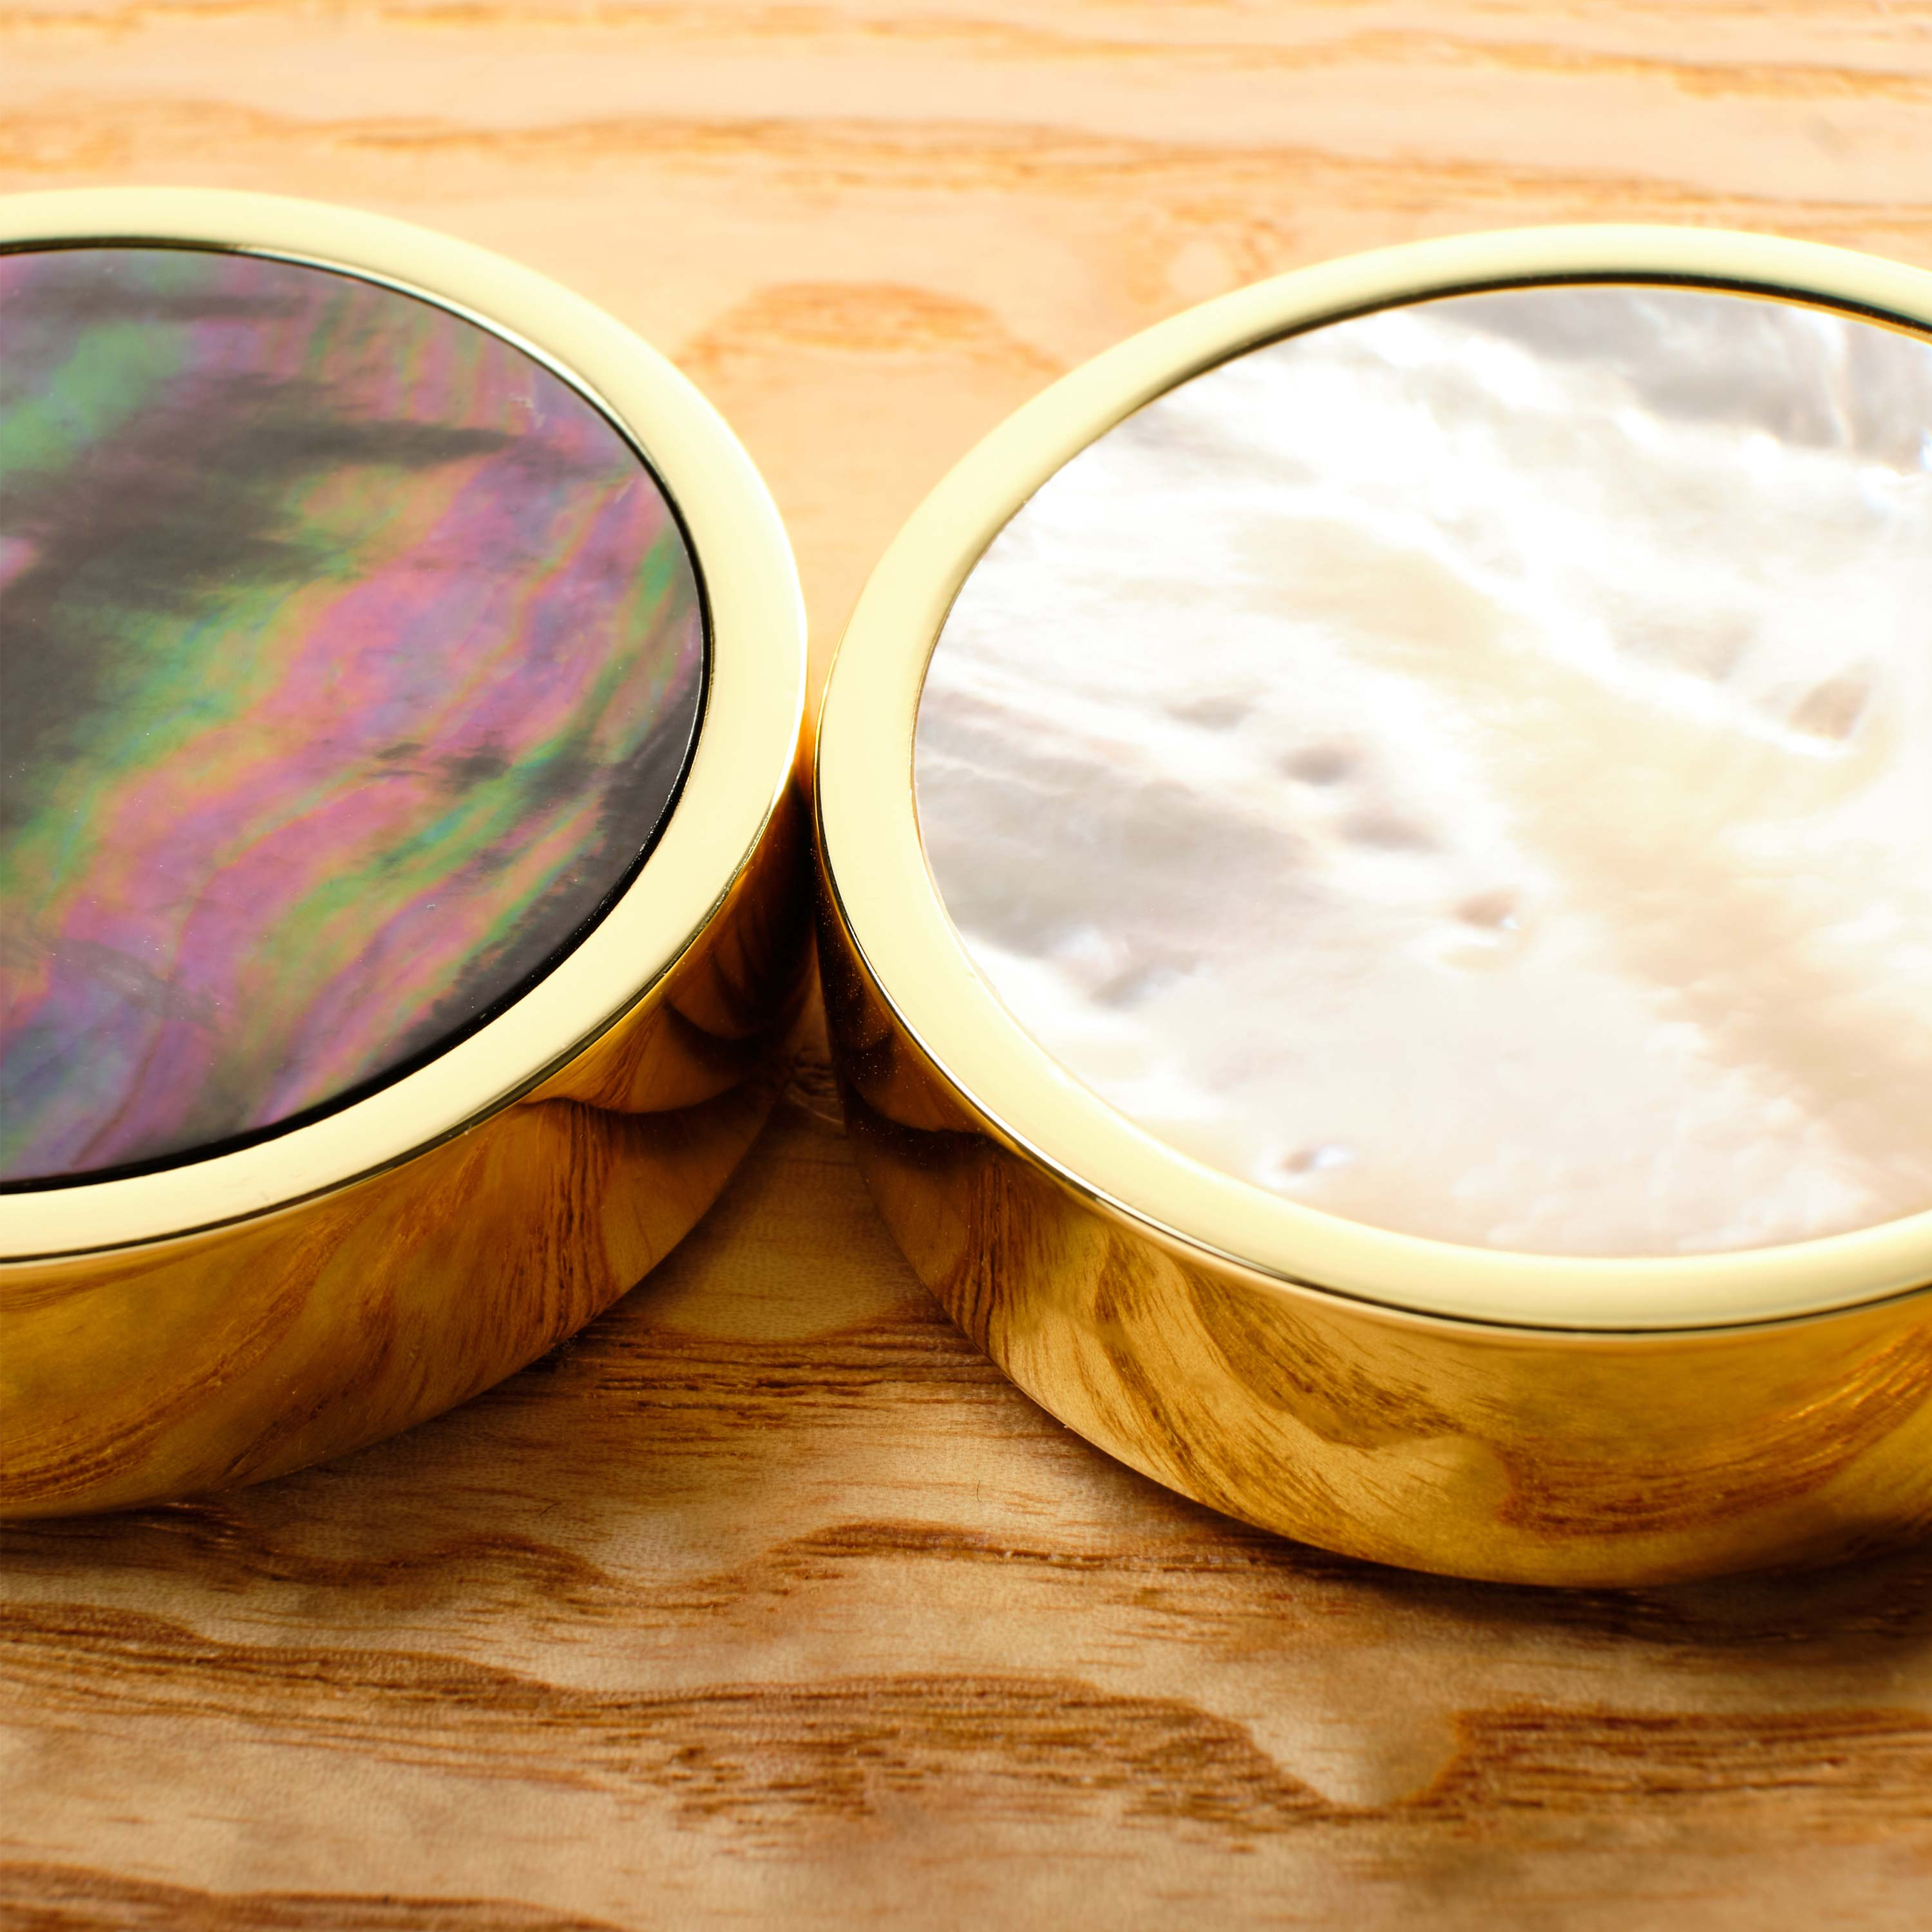 Mother of Pearl playing pieces